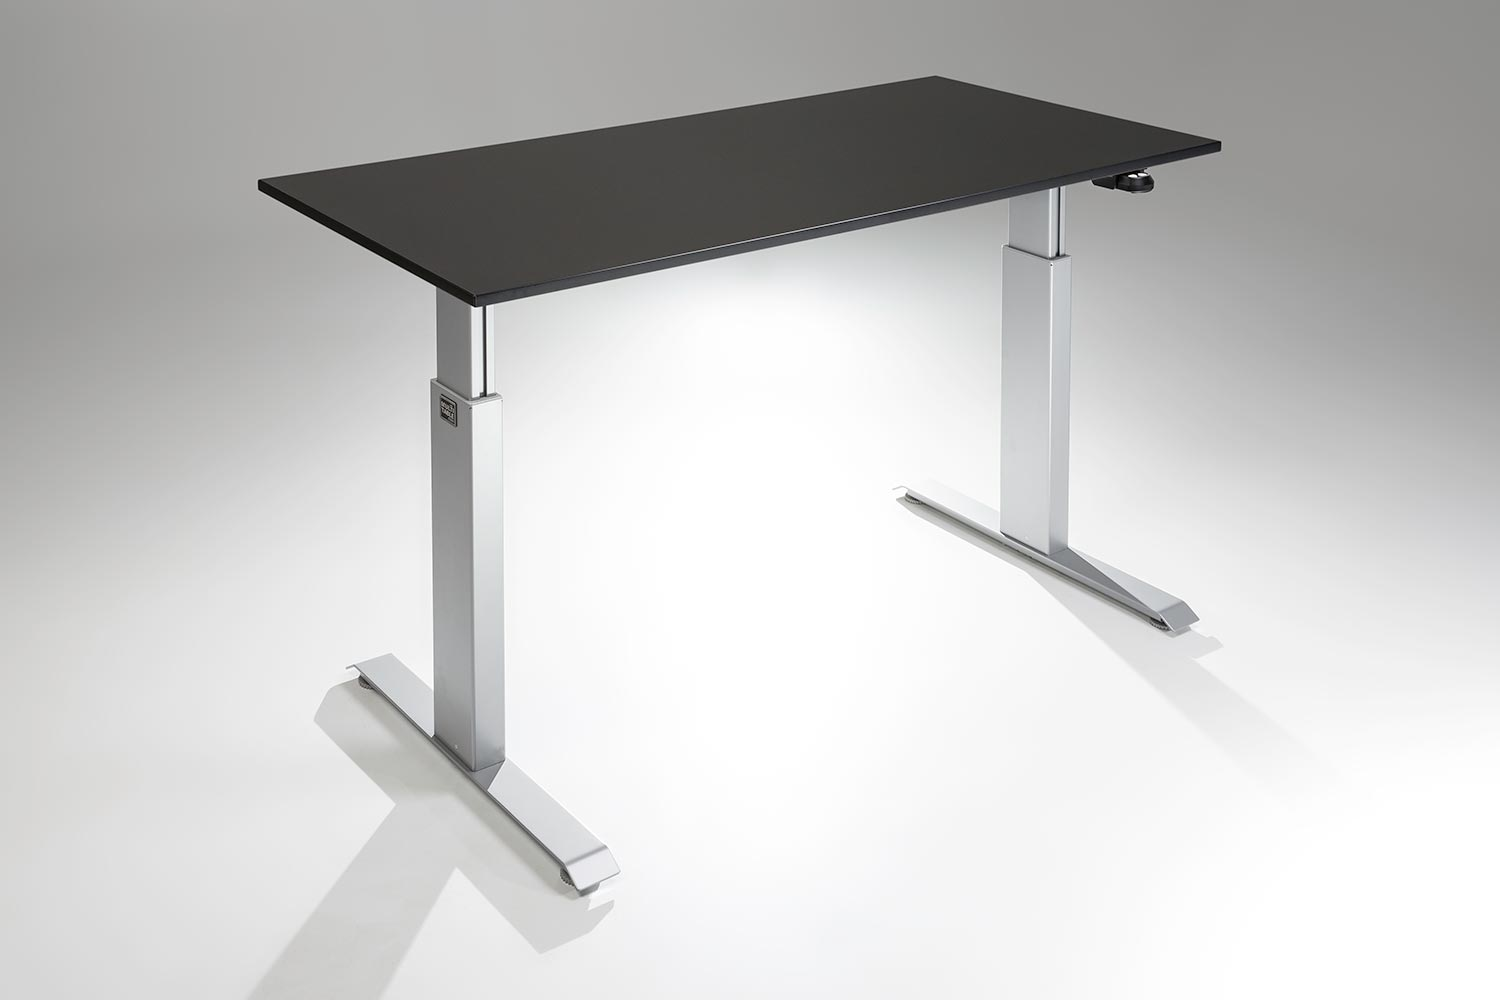 flextable height adjustable standing desk multitable. Black Bedroom Furniture Sets. Home Design Ideas